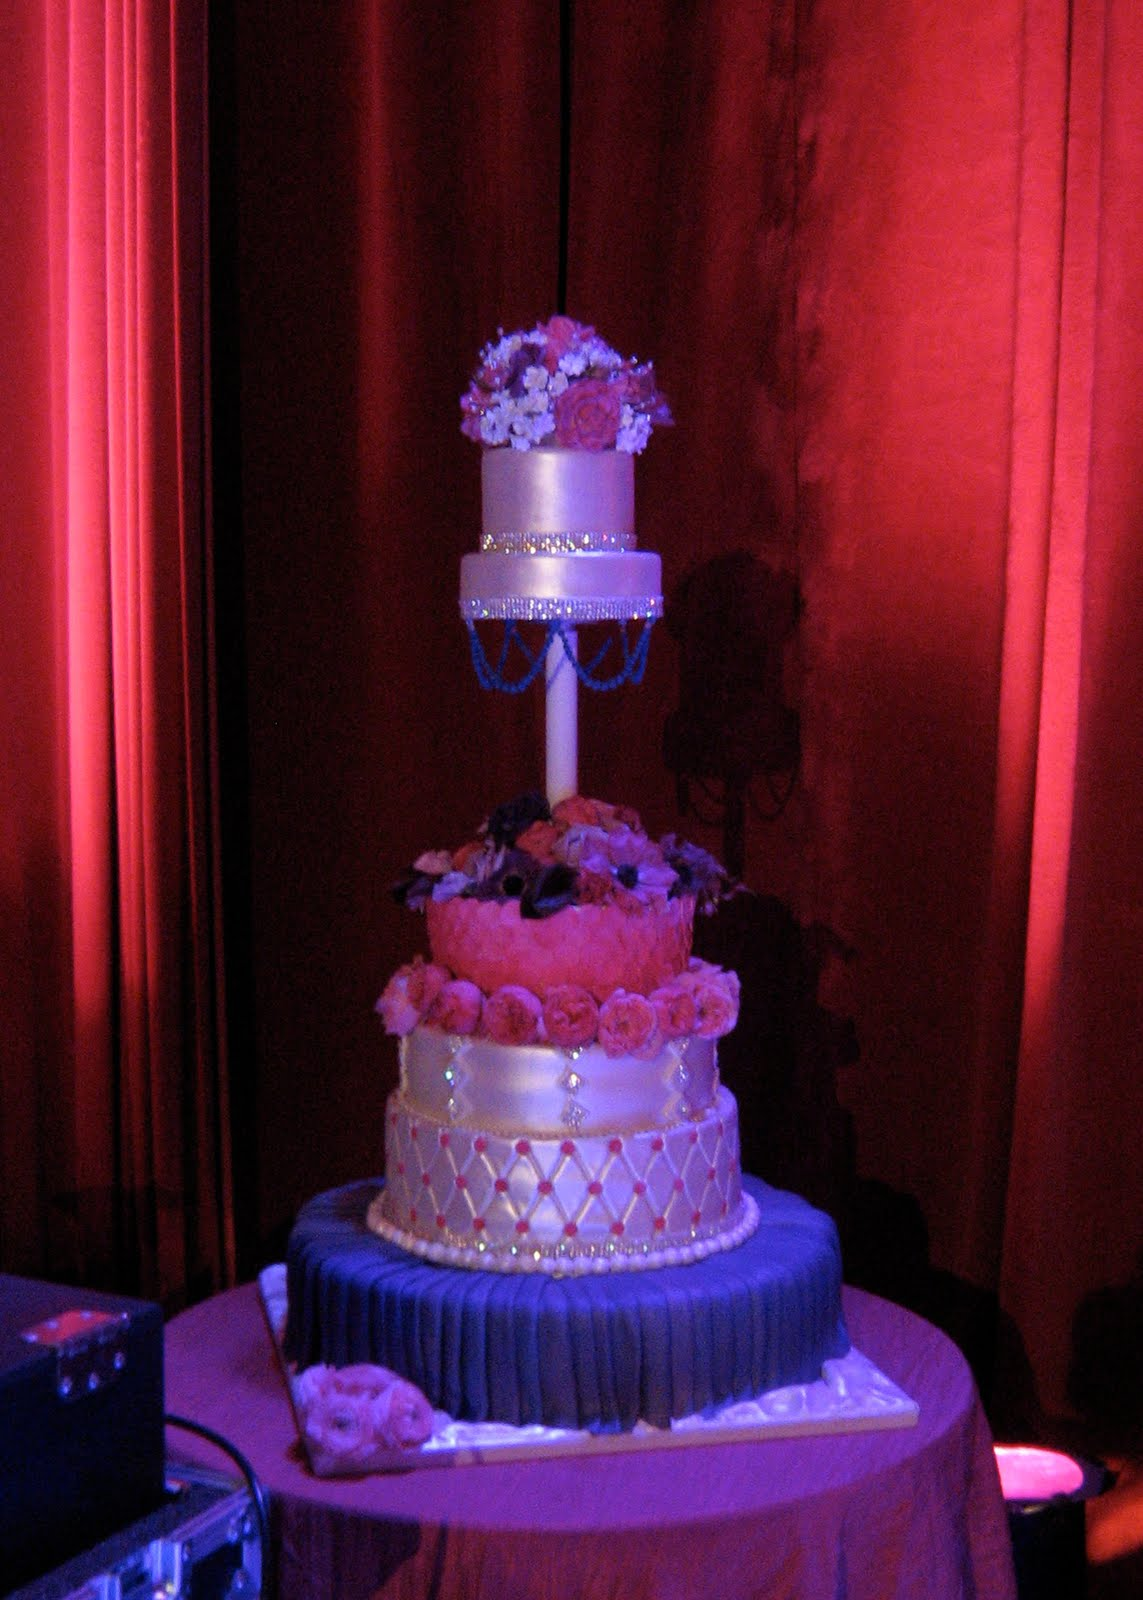 Sublime Bakery Wedding Cake For My Fair Wedding With